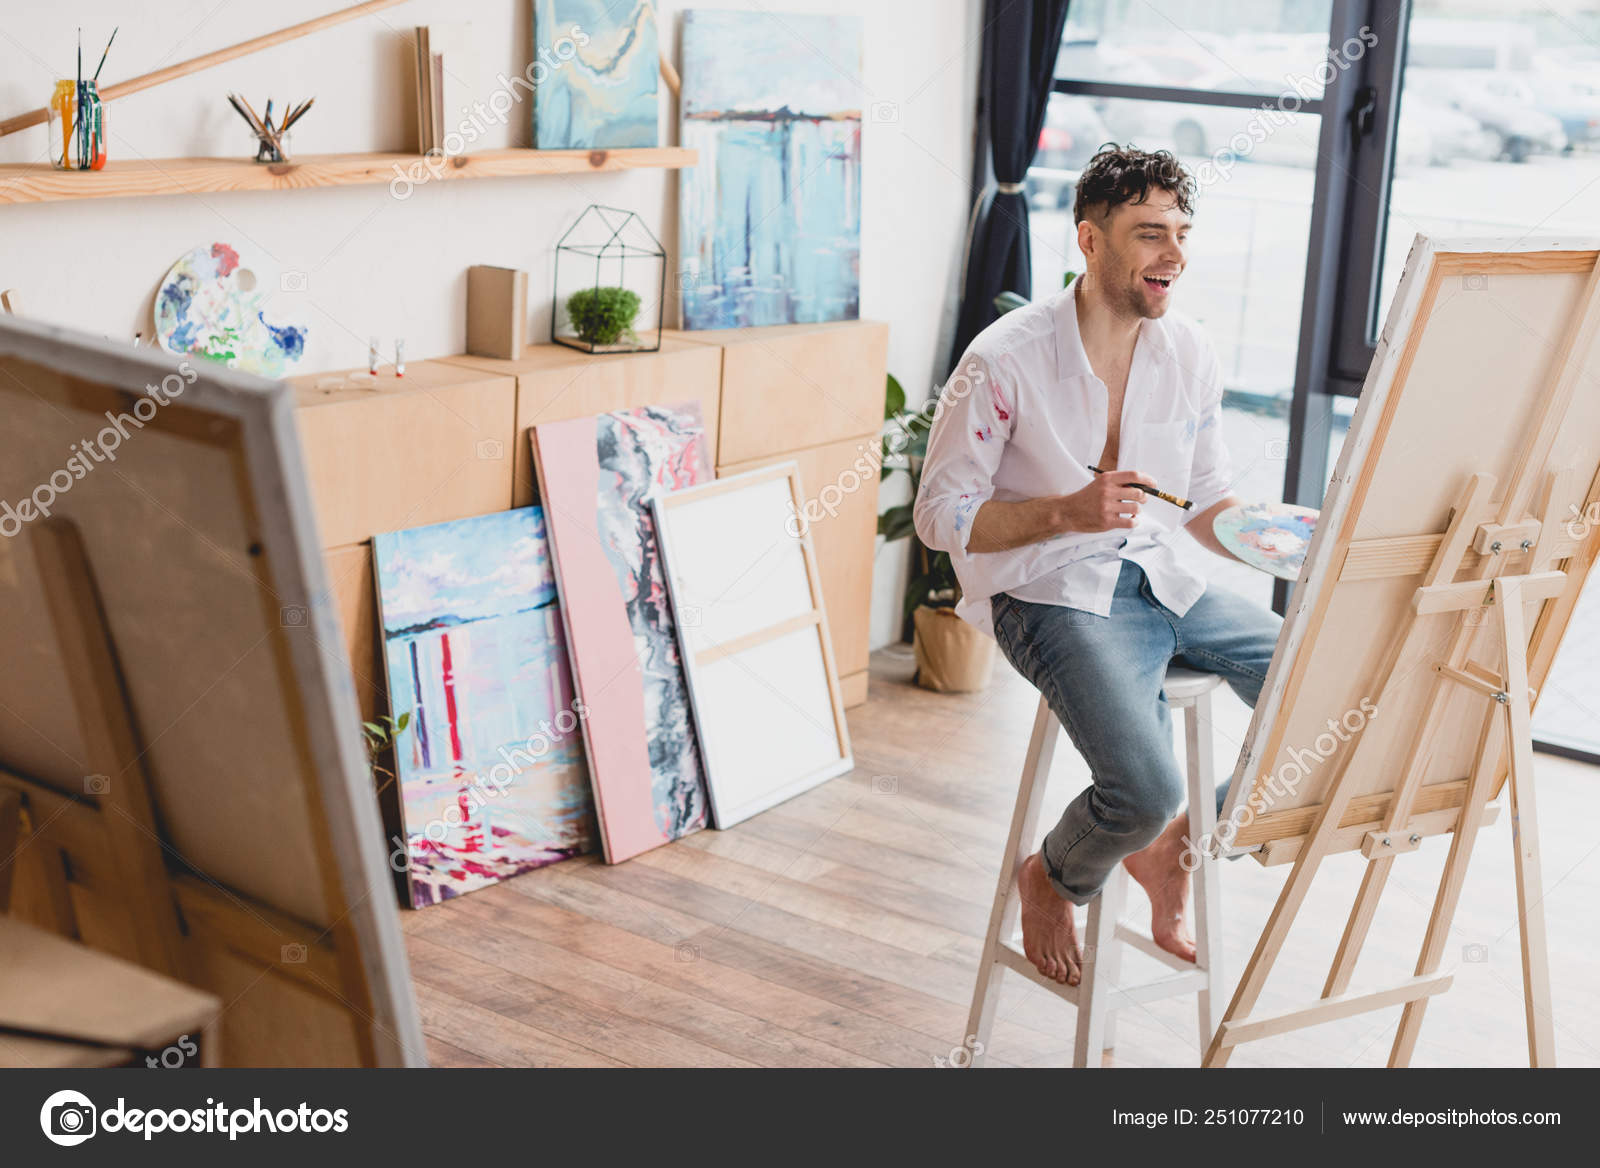 Groovy Selective Focus Cheerful Artist Sitting High Chair Easel Home Interior And Landscaping Ferensignezvosmurscom